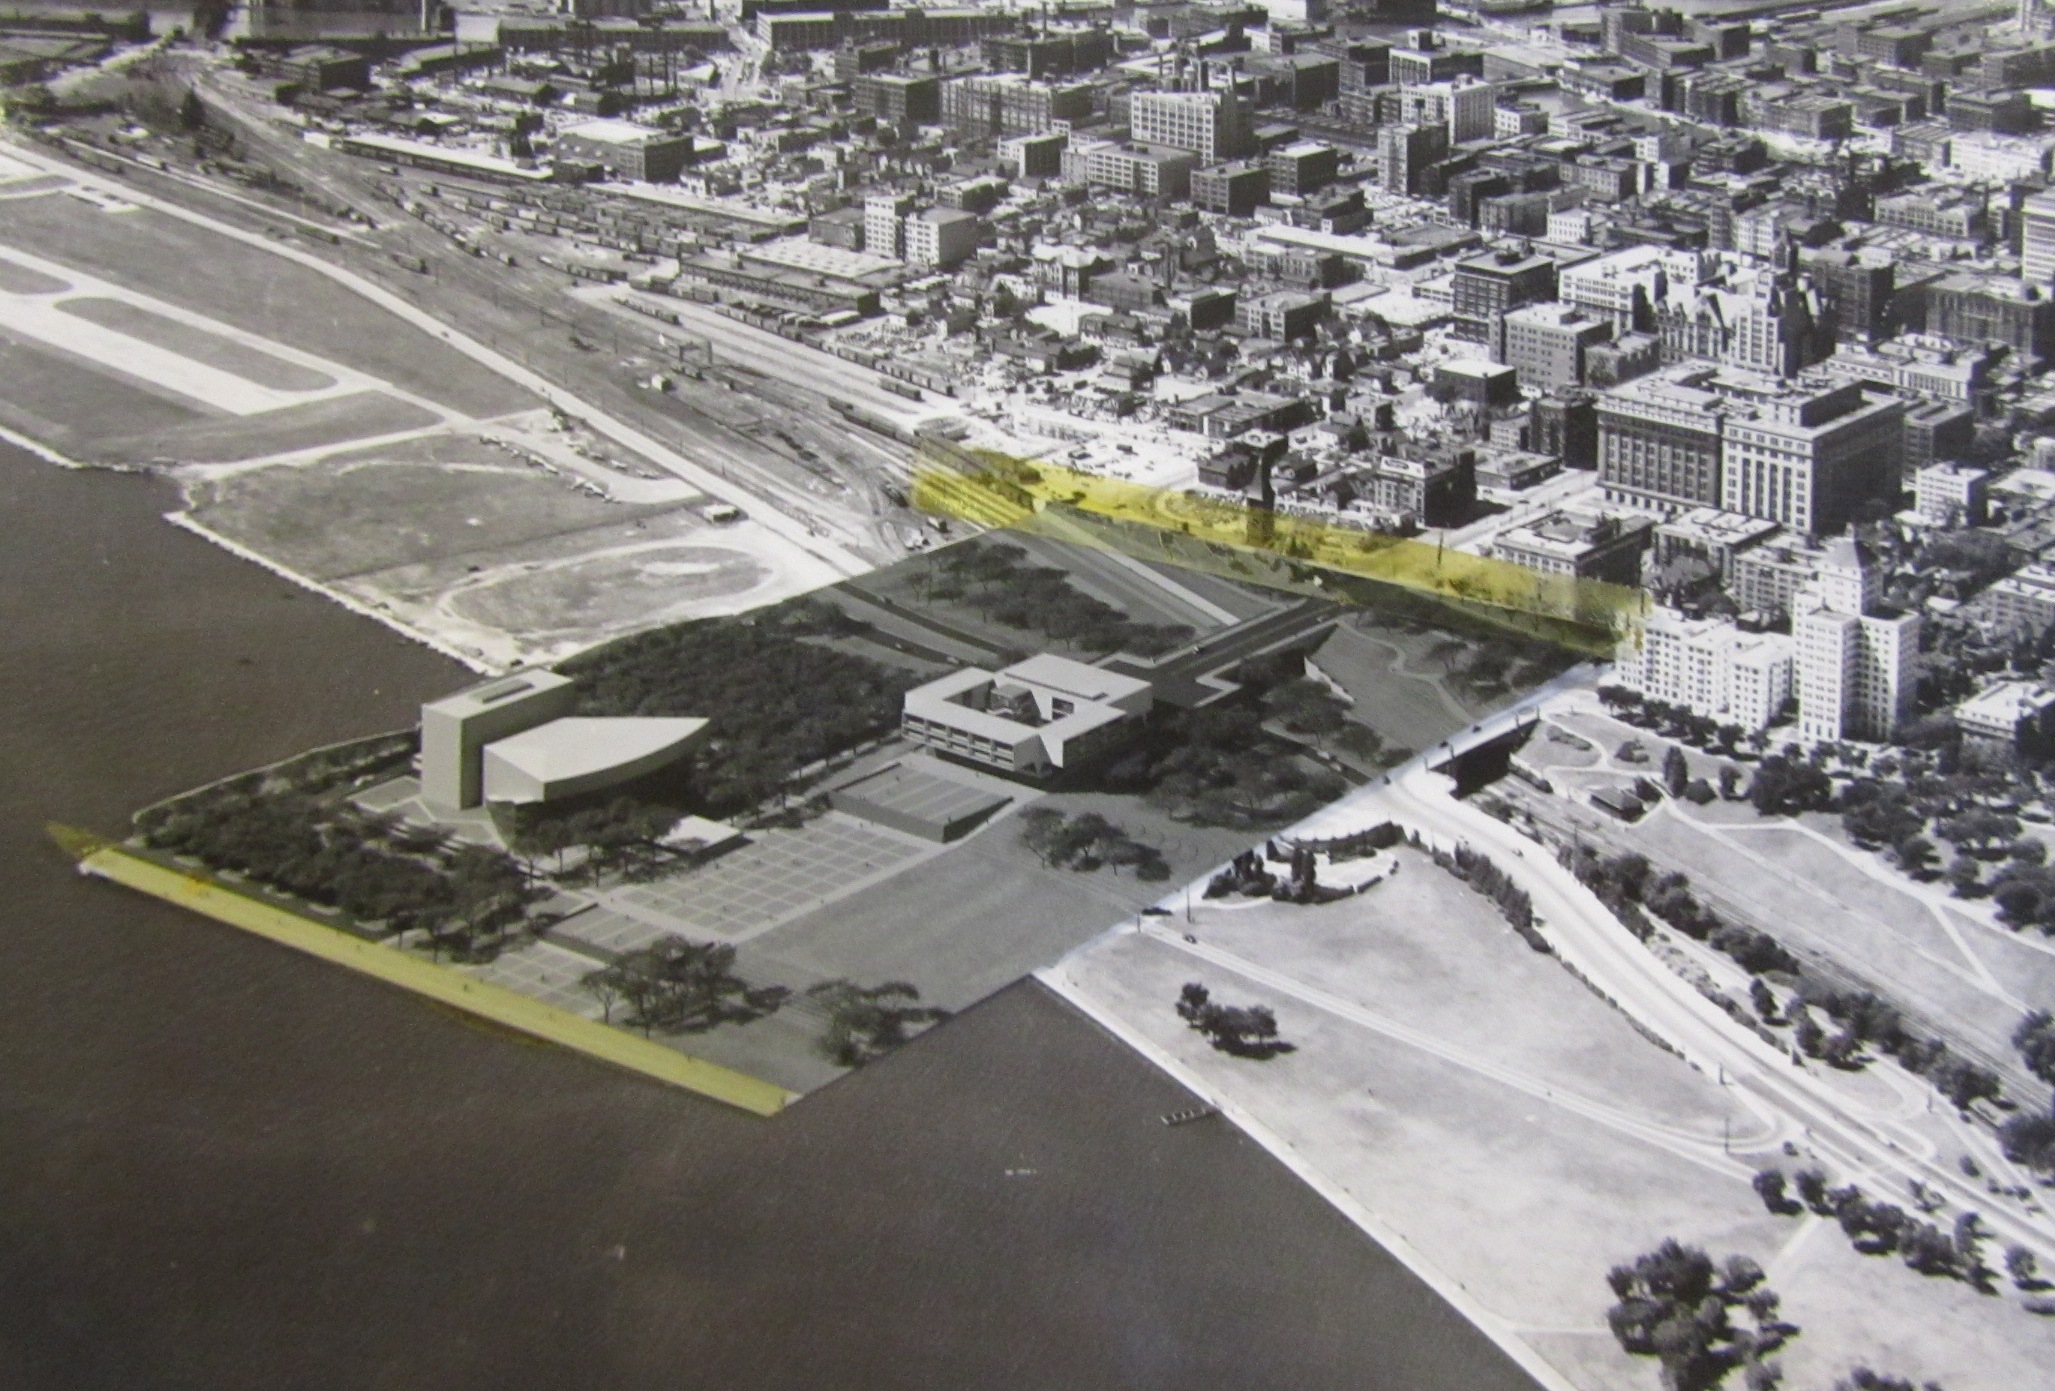 Aerial view of the lakefront with a taped picture of Eero Saarinen's model of the War Memorial Center and a concert hall which was never built.